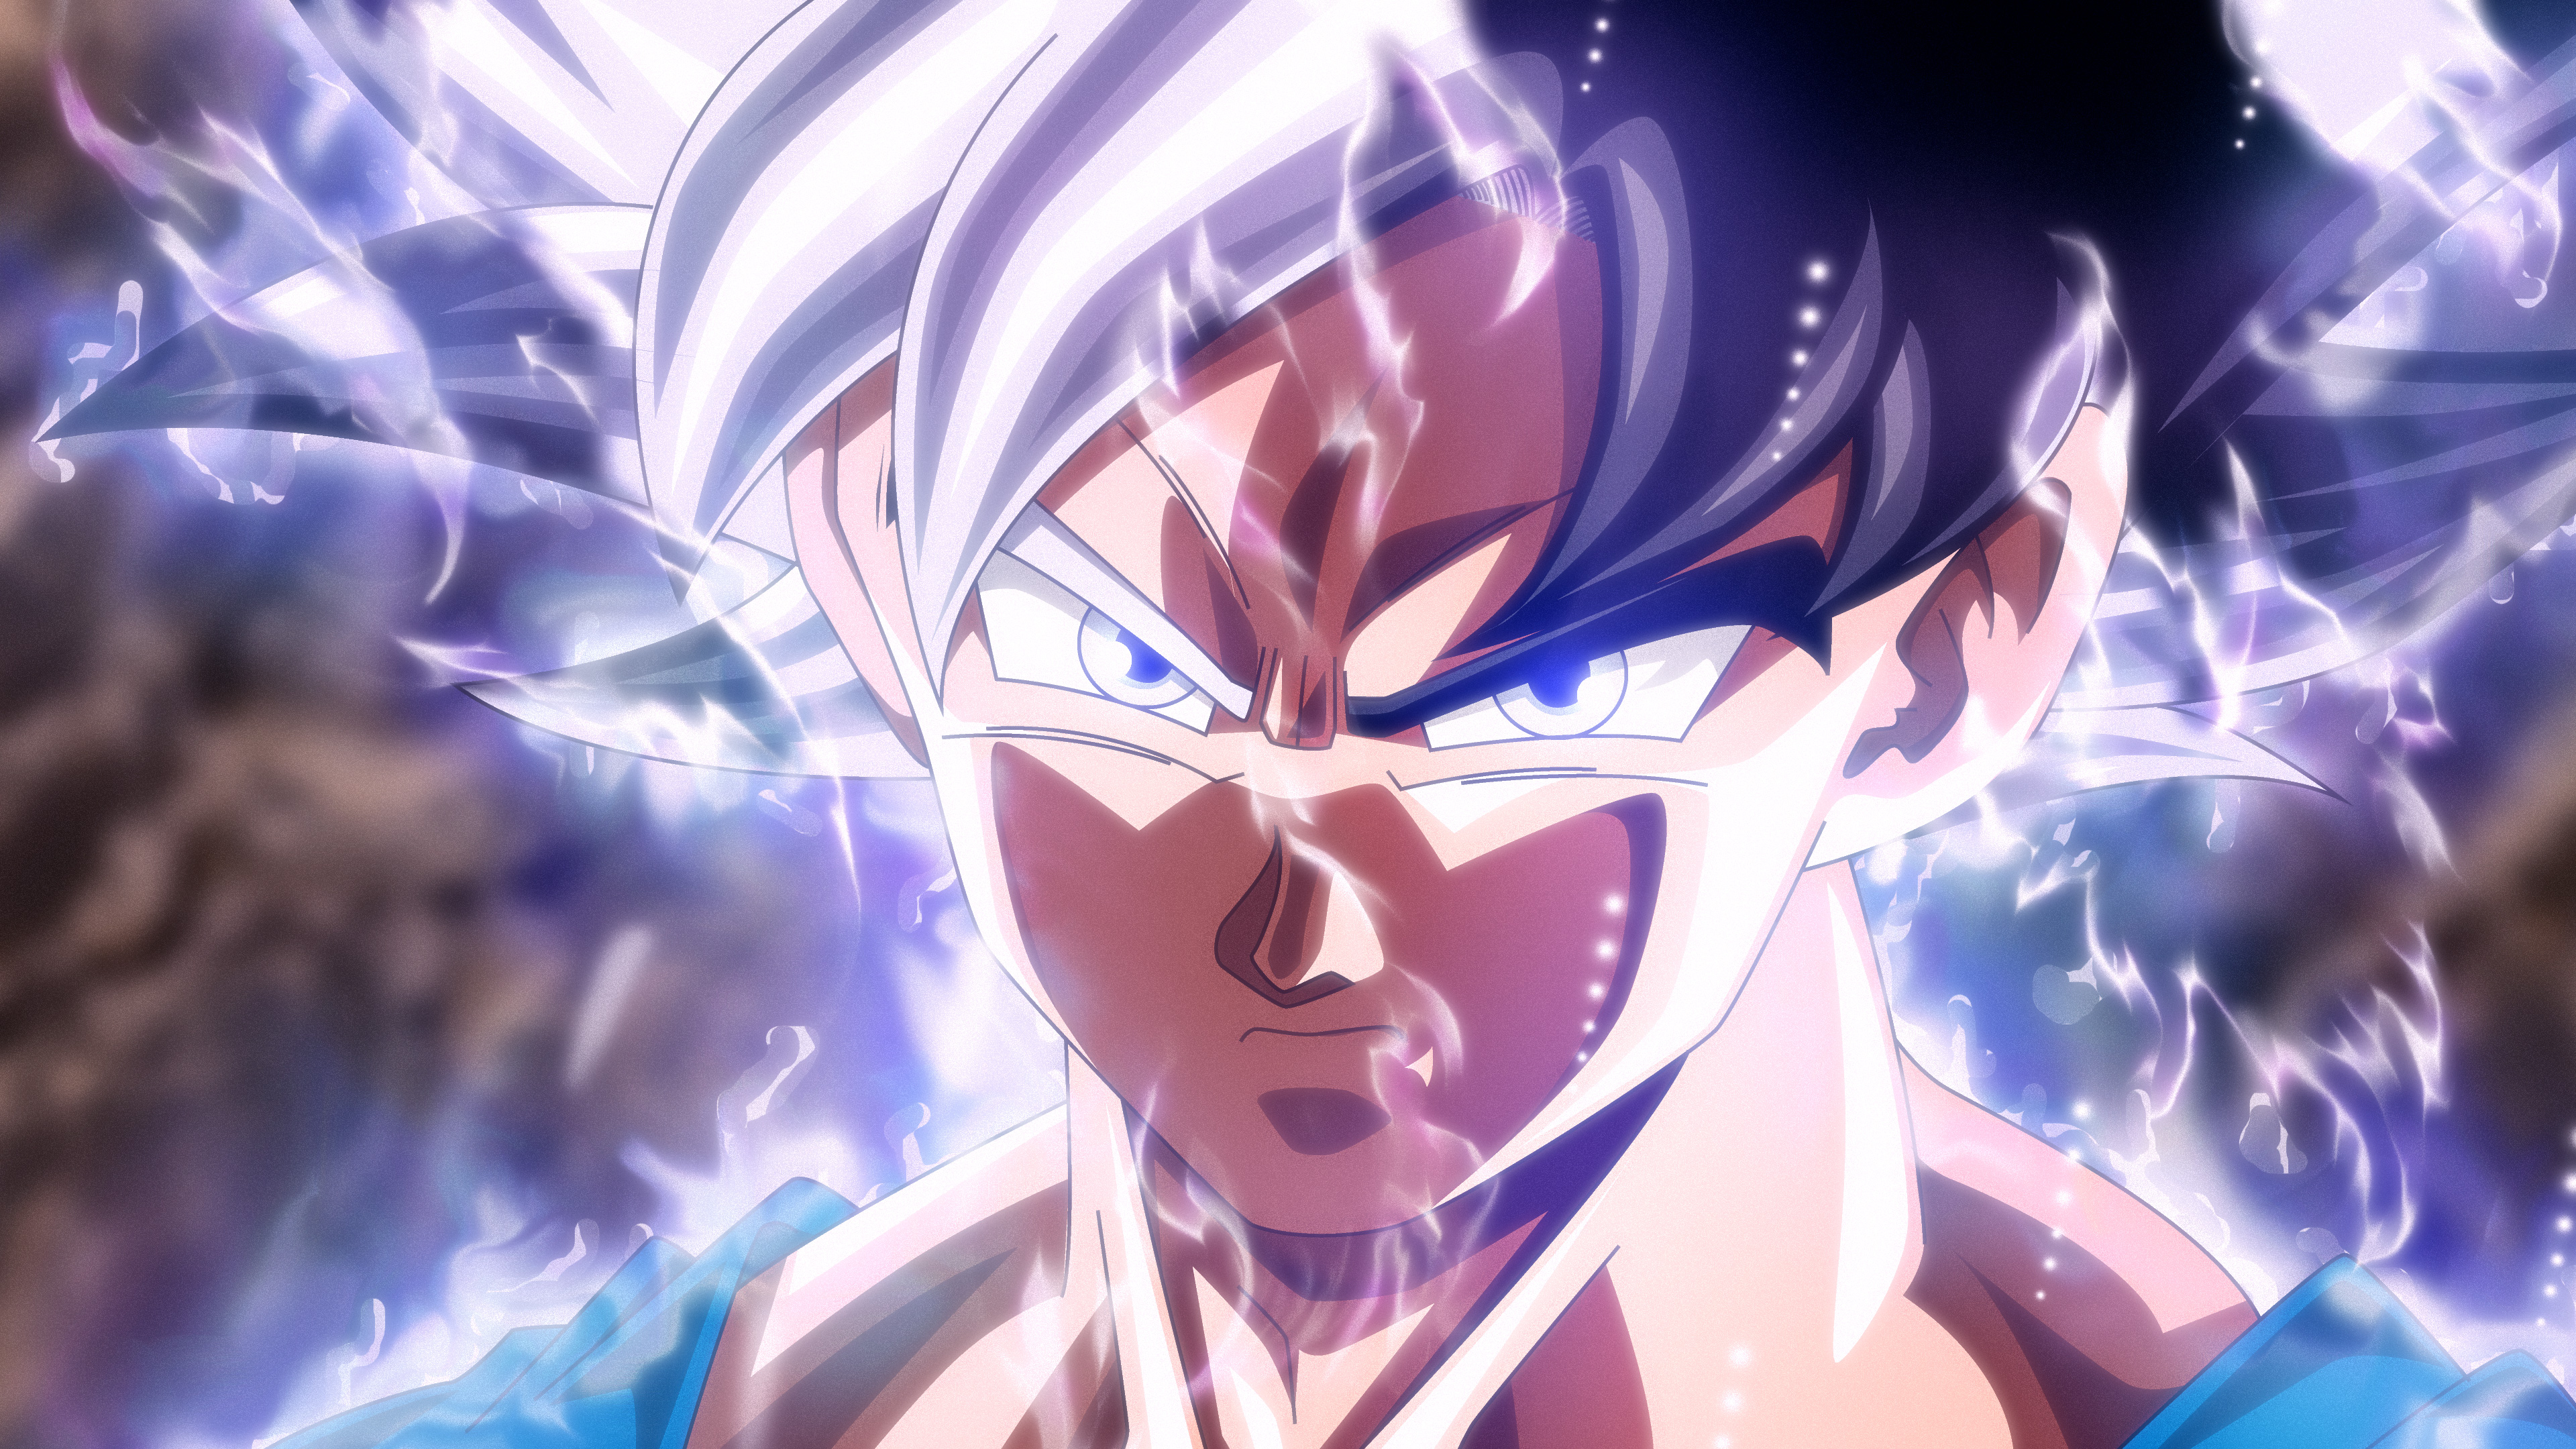 Goku Ultra Instinct Wallpaper Hd: Son Goku Mastered Ultra Instinct, HD Anime, 4k Wallpapers